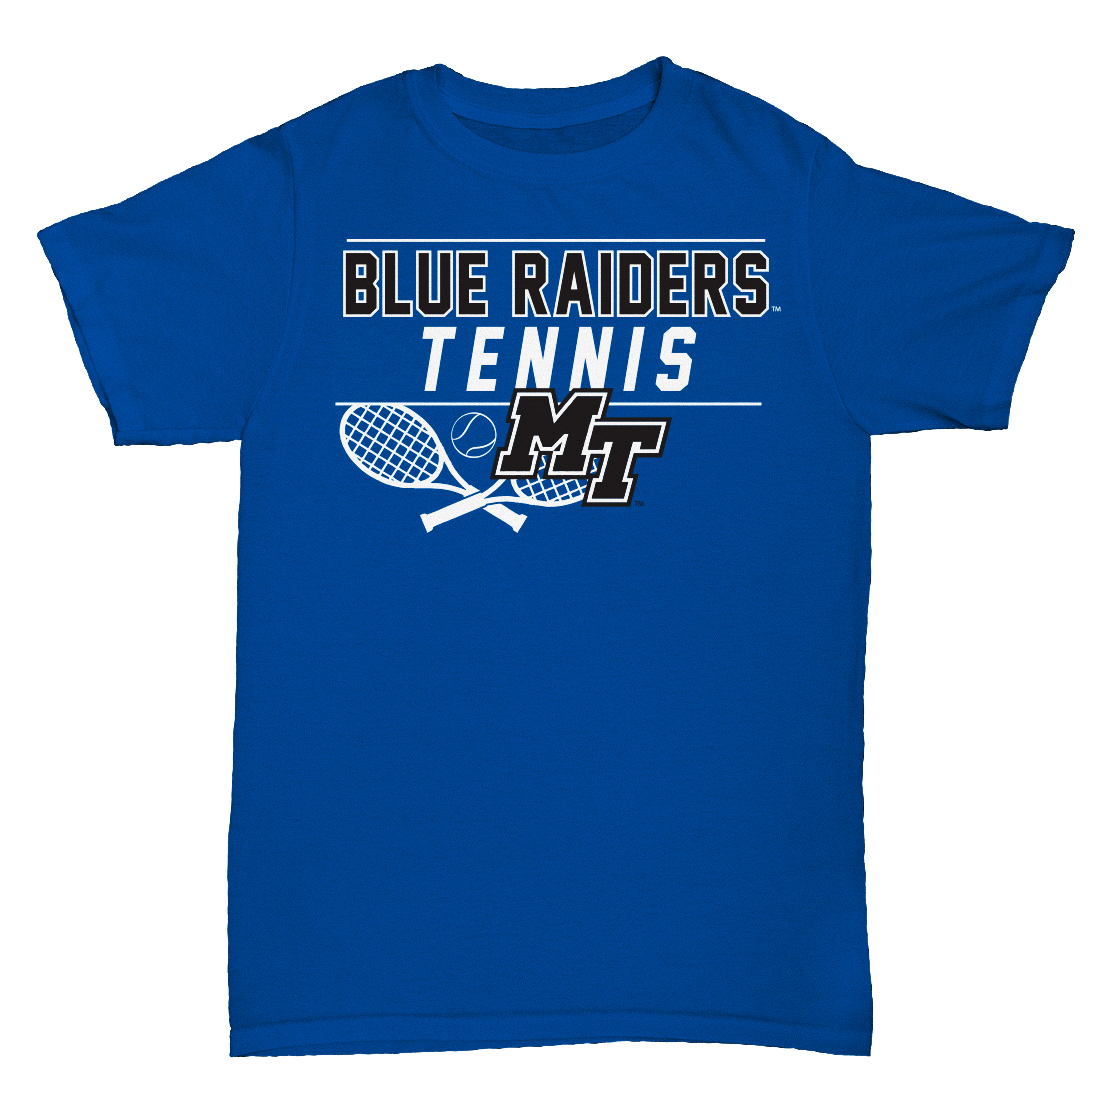 Blue Raiders Tennis Shirt